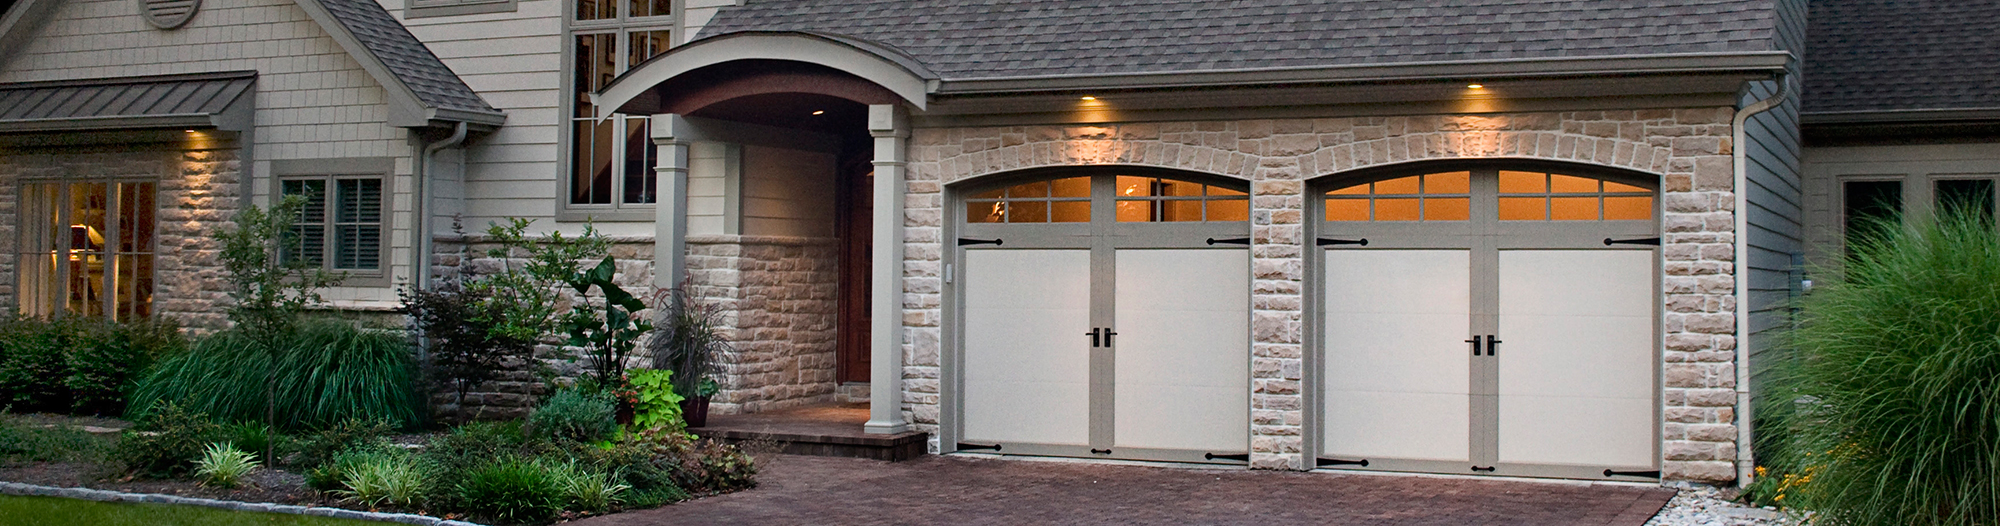 Garage Door Repair Services South Jersey Cherry Hill